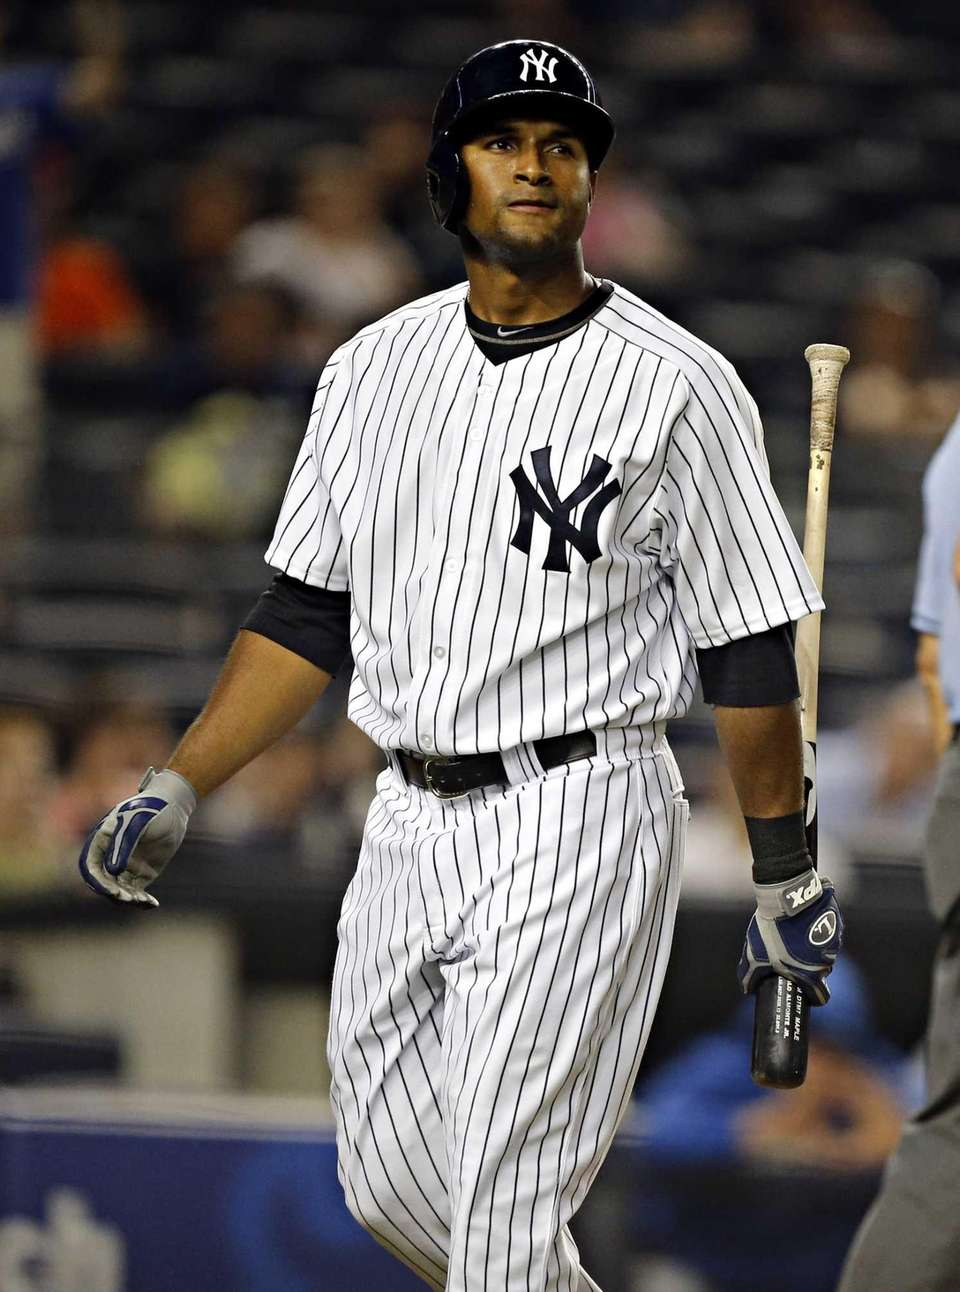 Yankees left fielder Zoilo Almonte is dejected after